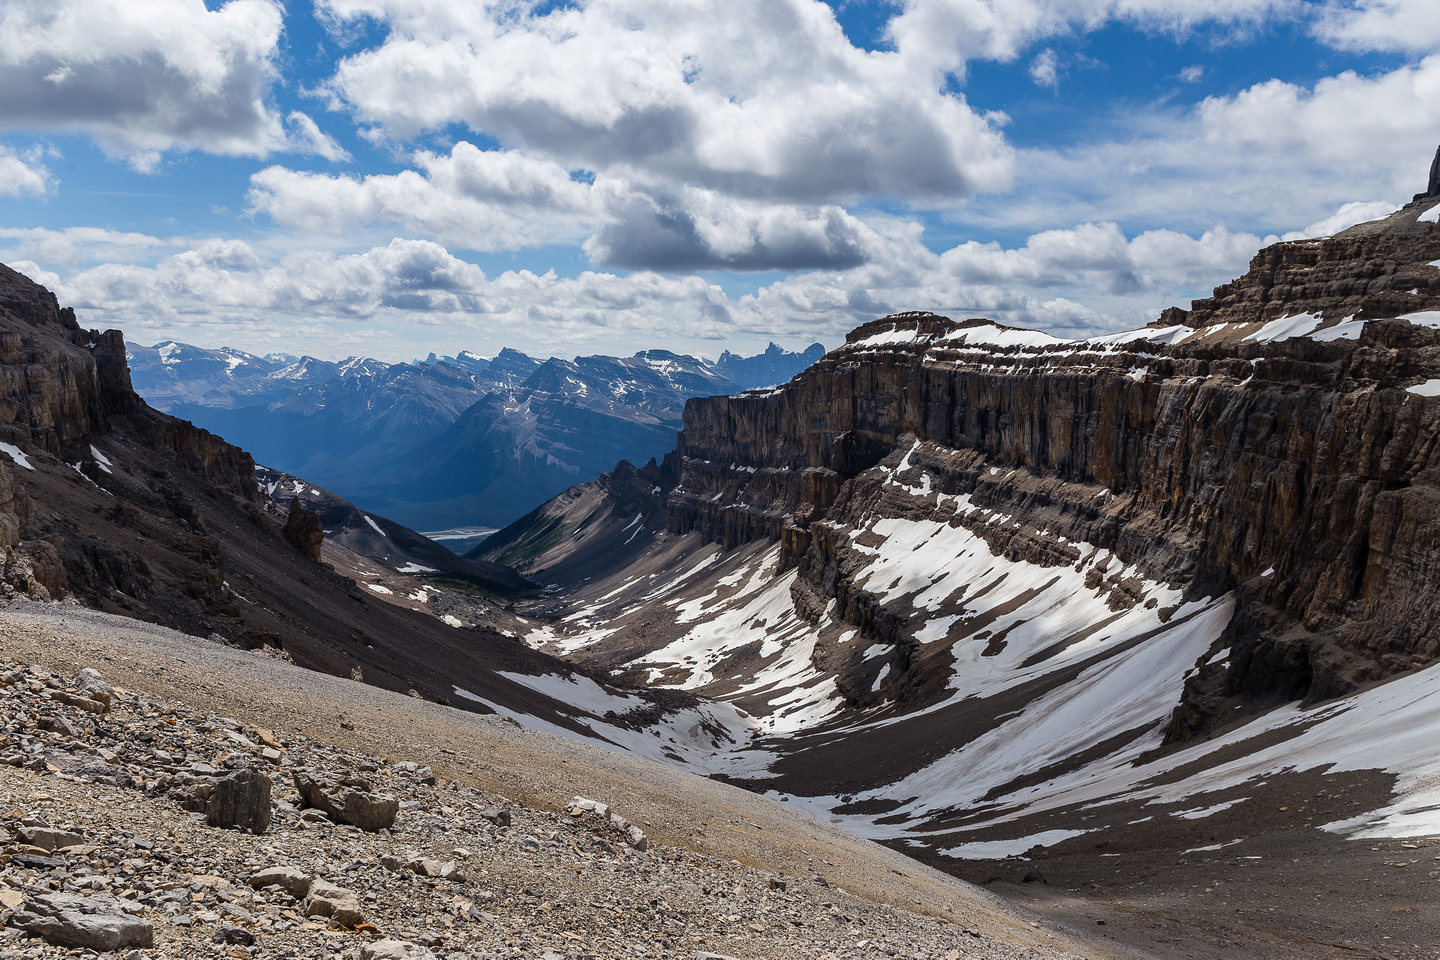 The scree run on the upper slopes beneath the Cline / Lion col is awesome - and fast!